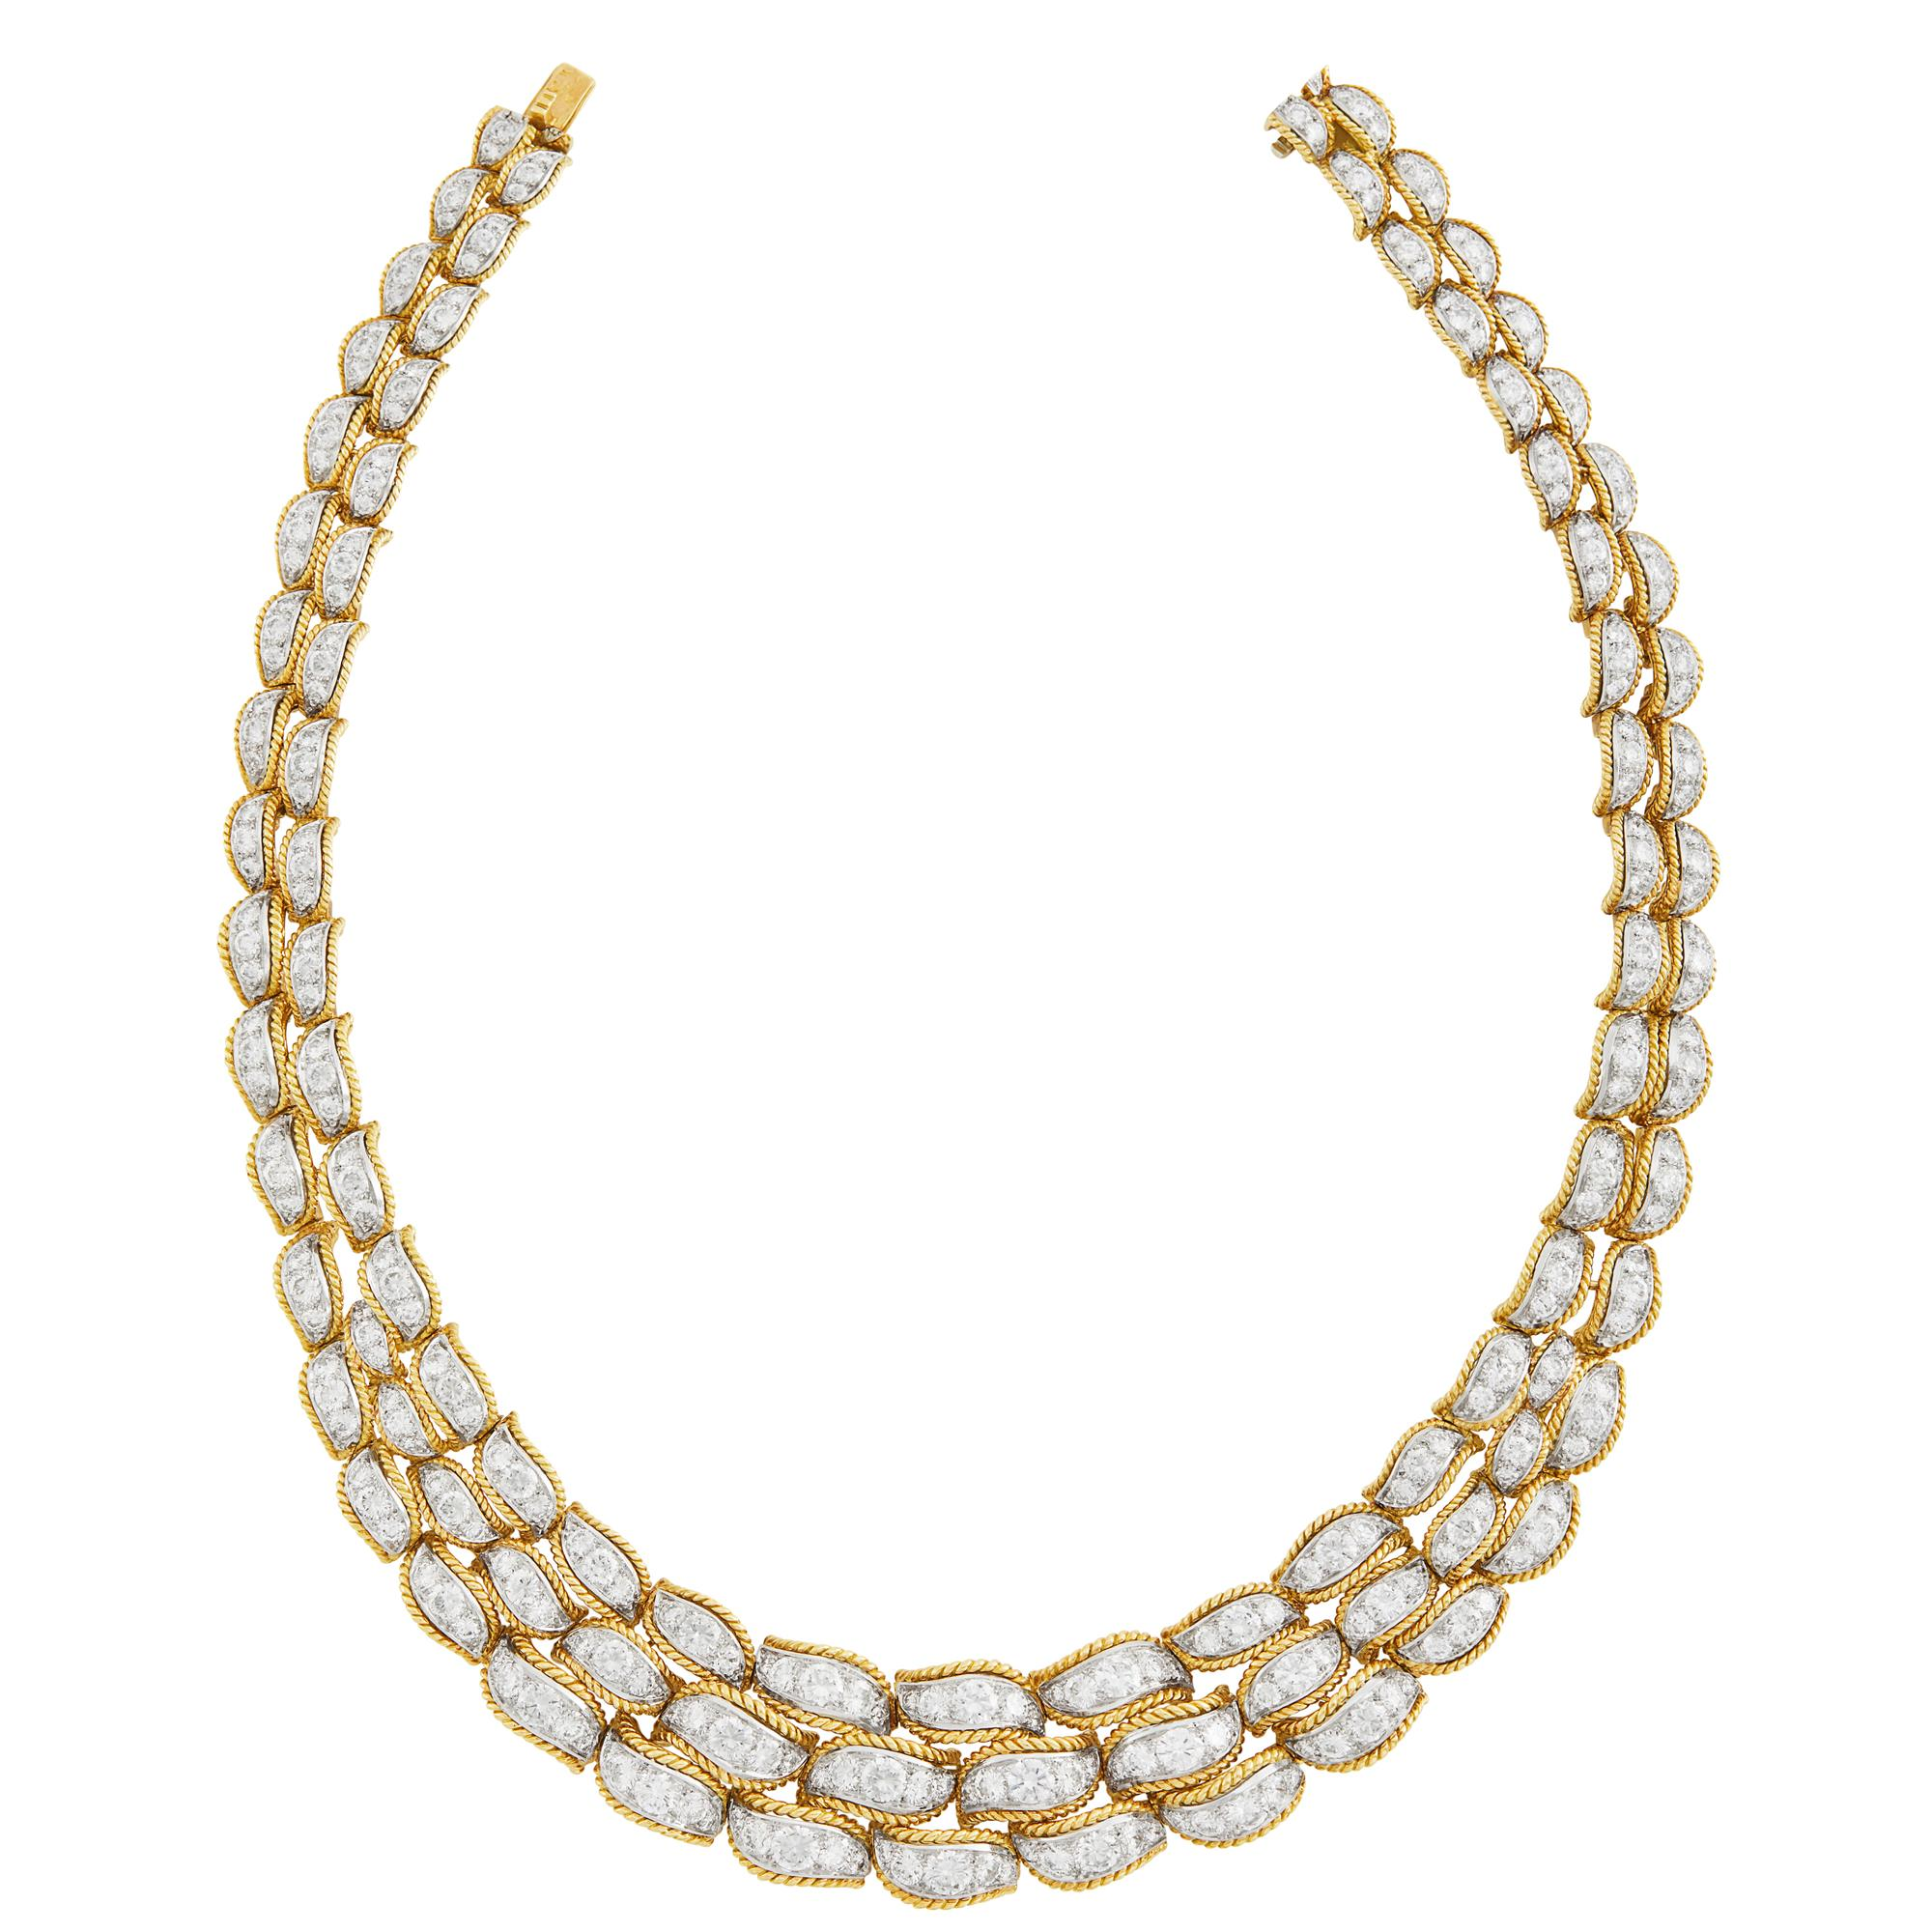 Lot image - Gold, Platinum and Diamond Necklace, Van Cleef & Arpels, France